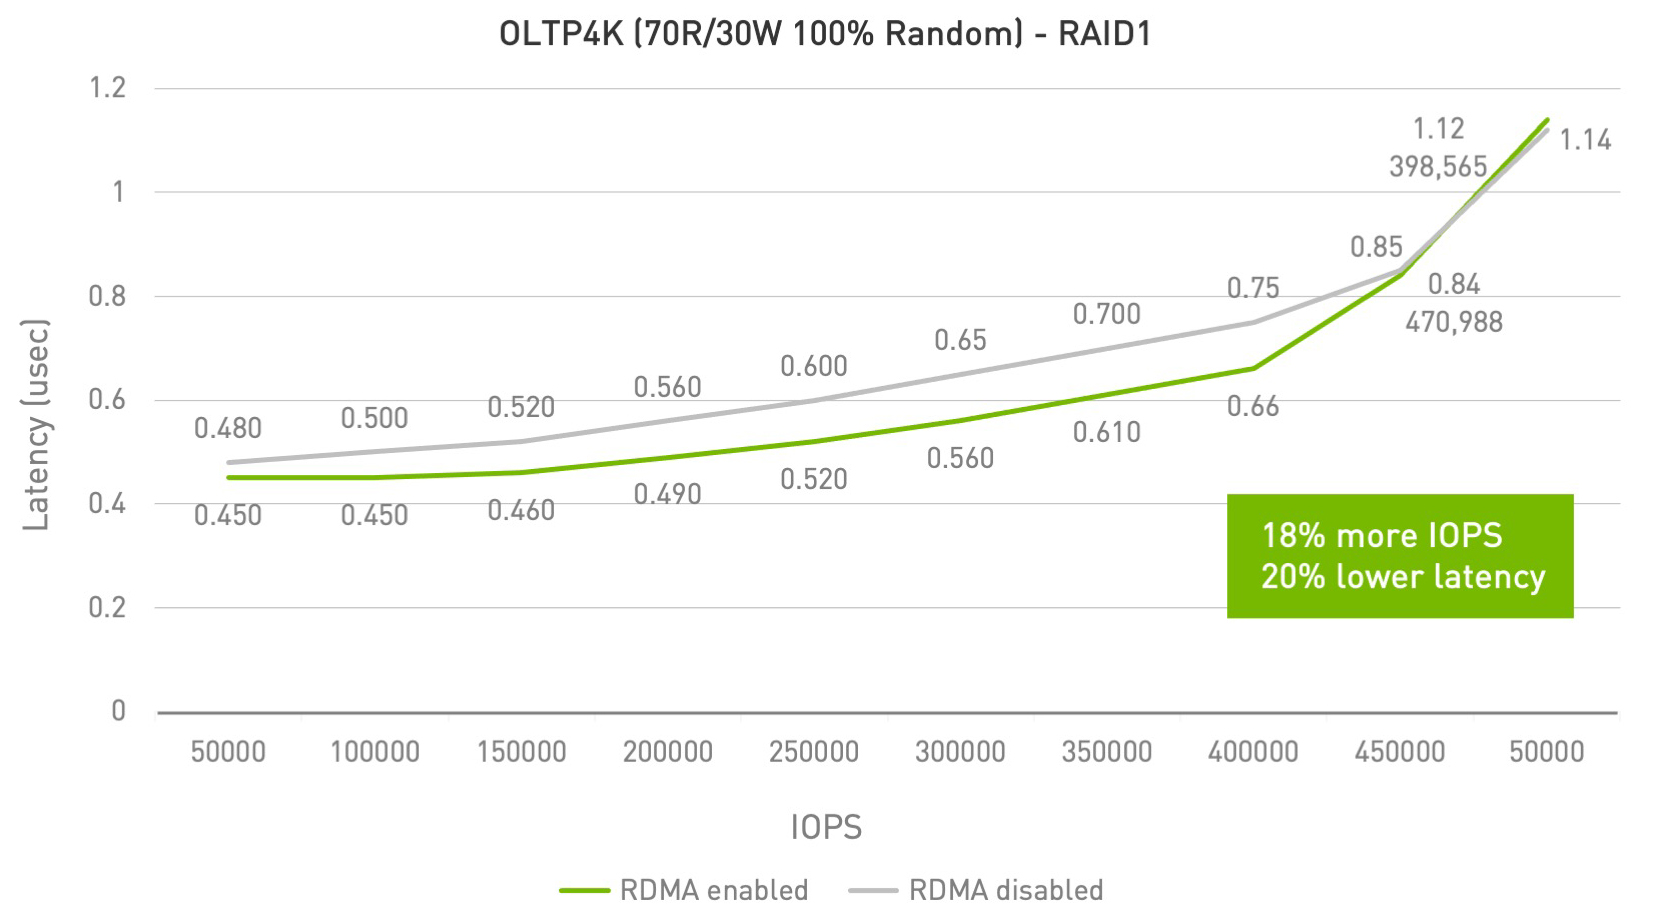 Chart with performance improvemnts from running RDMA